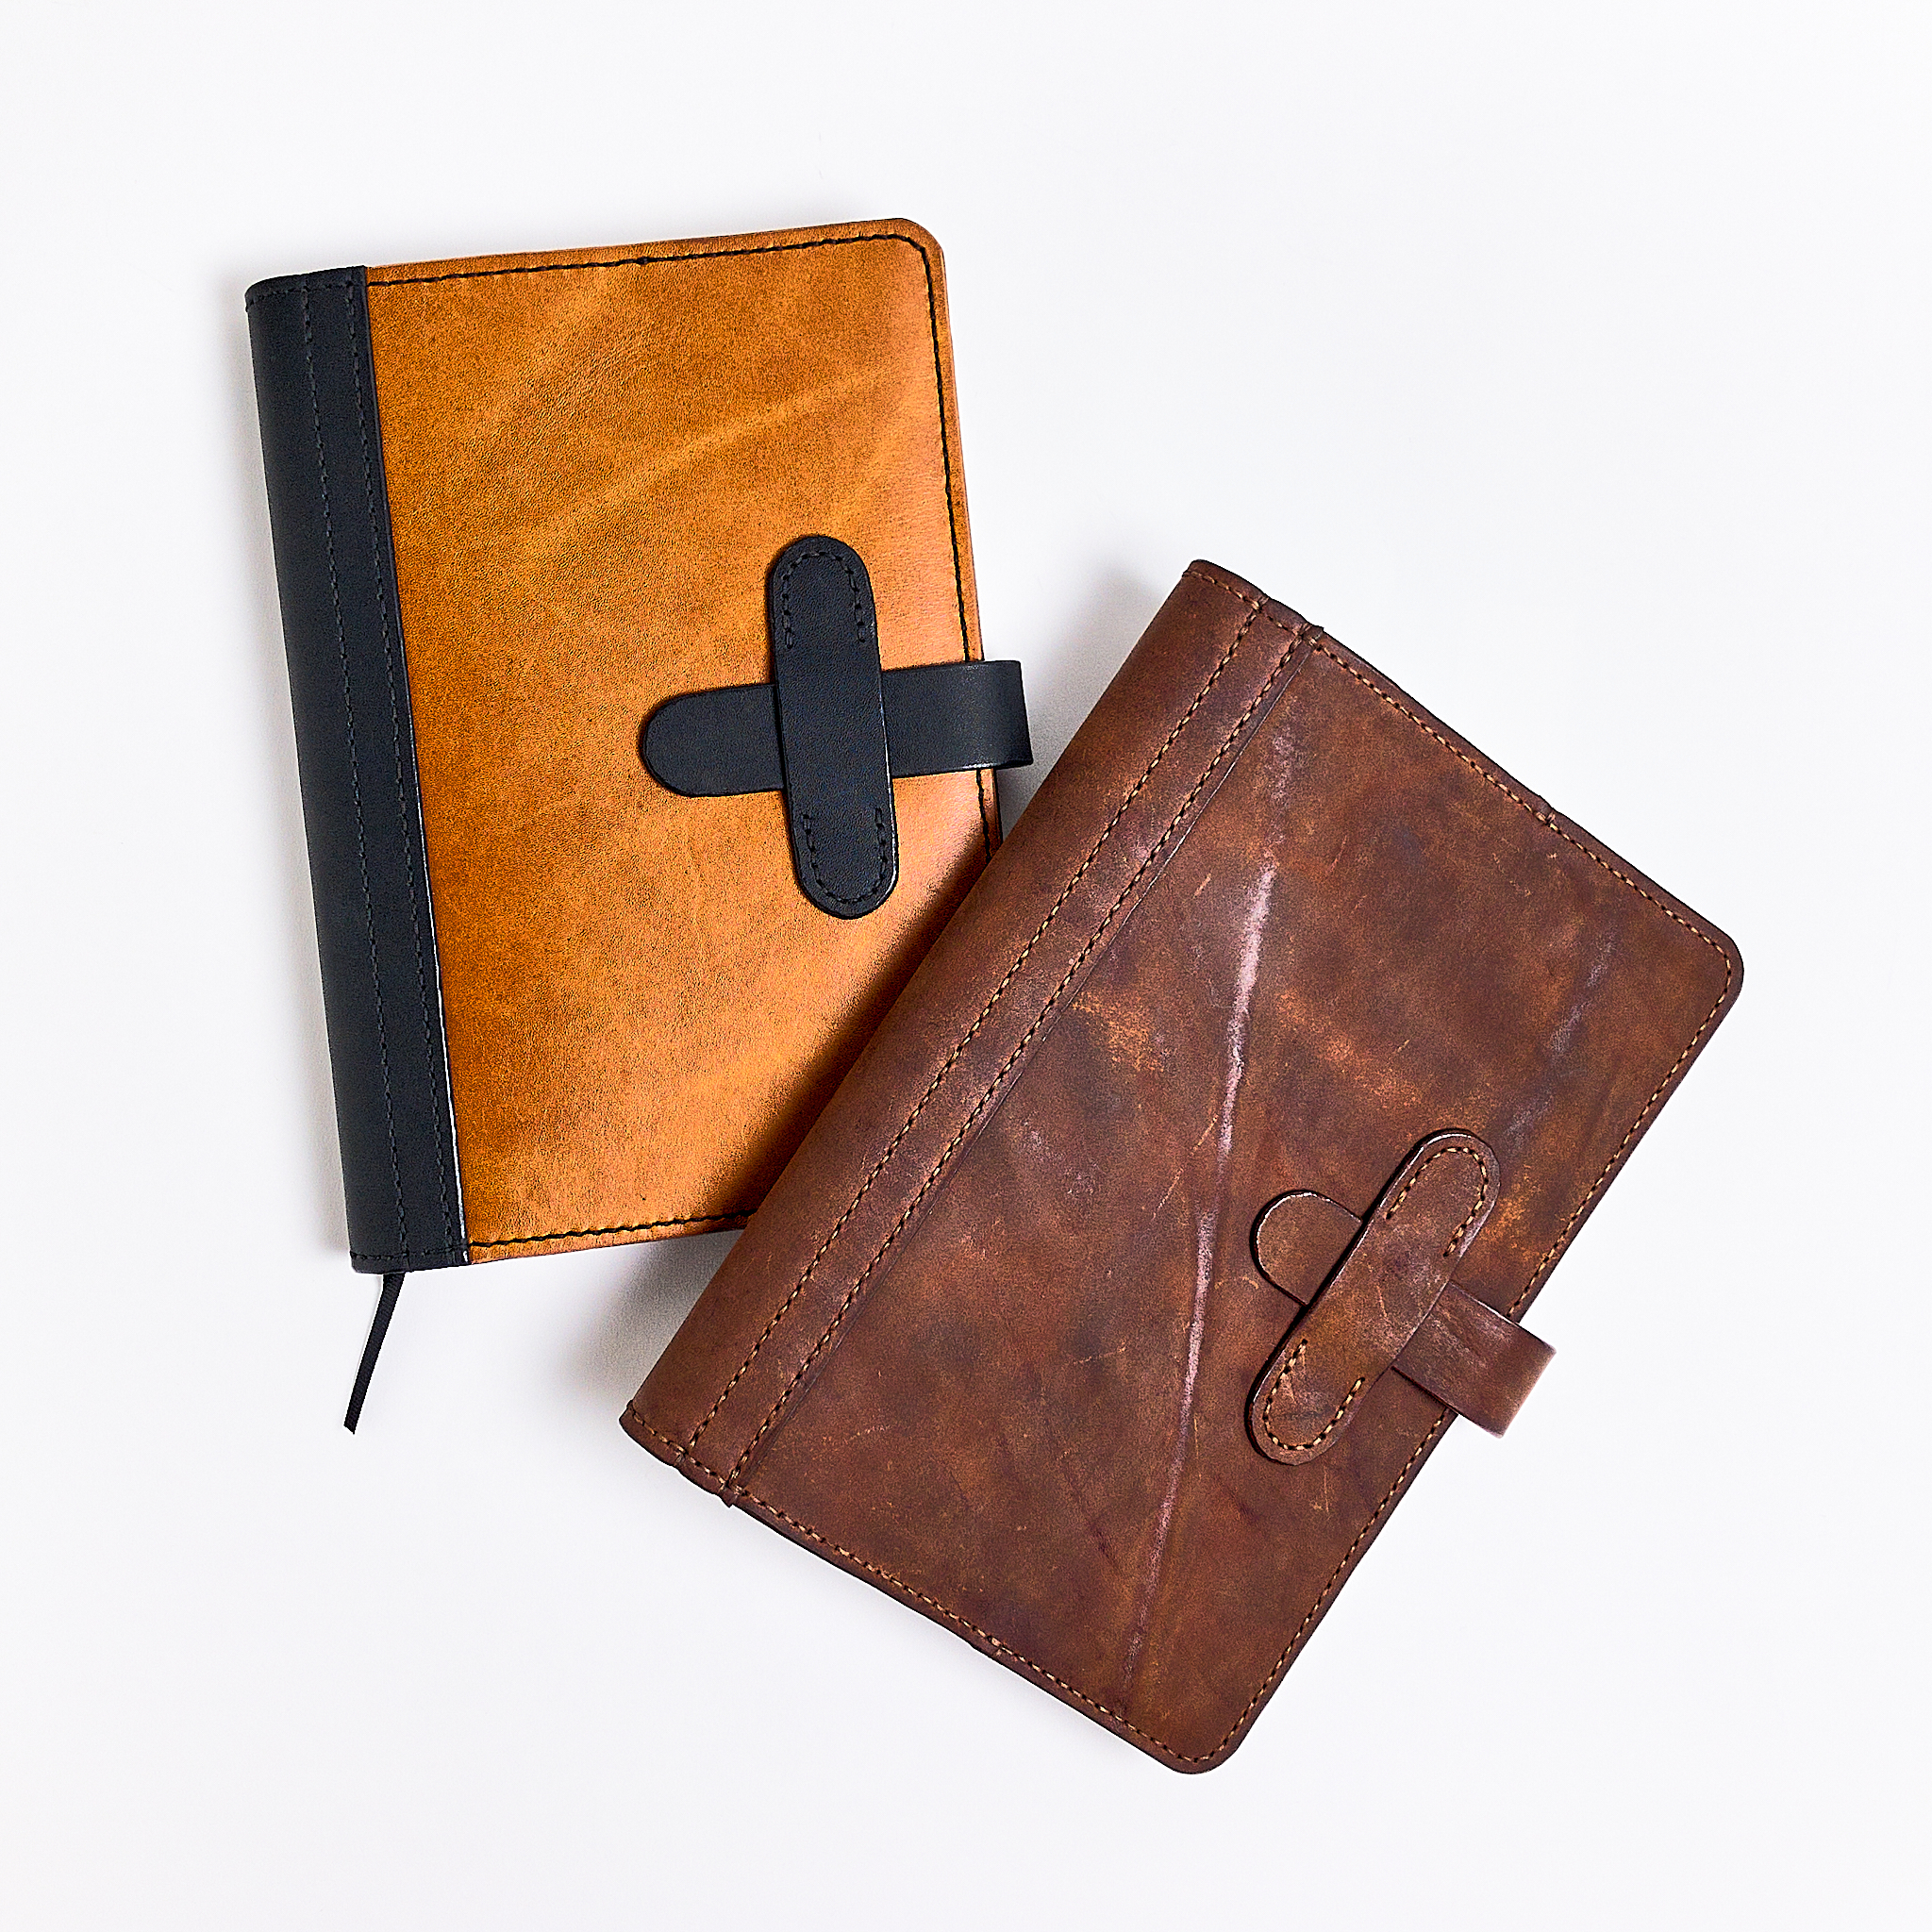 Two hand-stitched leather journal covers made by Bob Gilmour, Australia - Gilmour Design